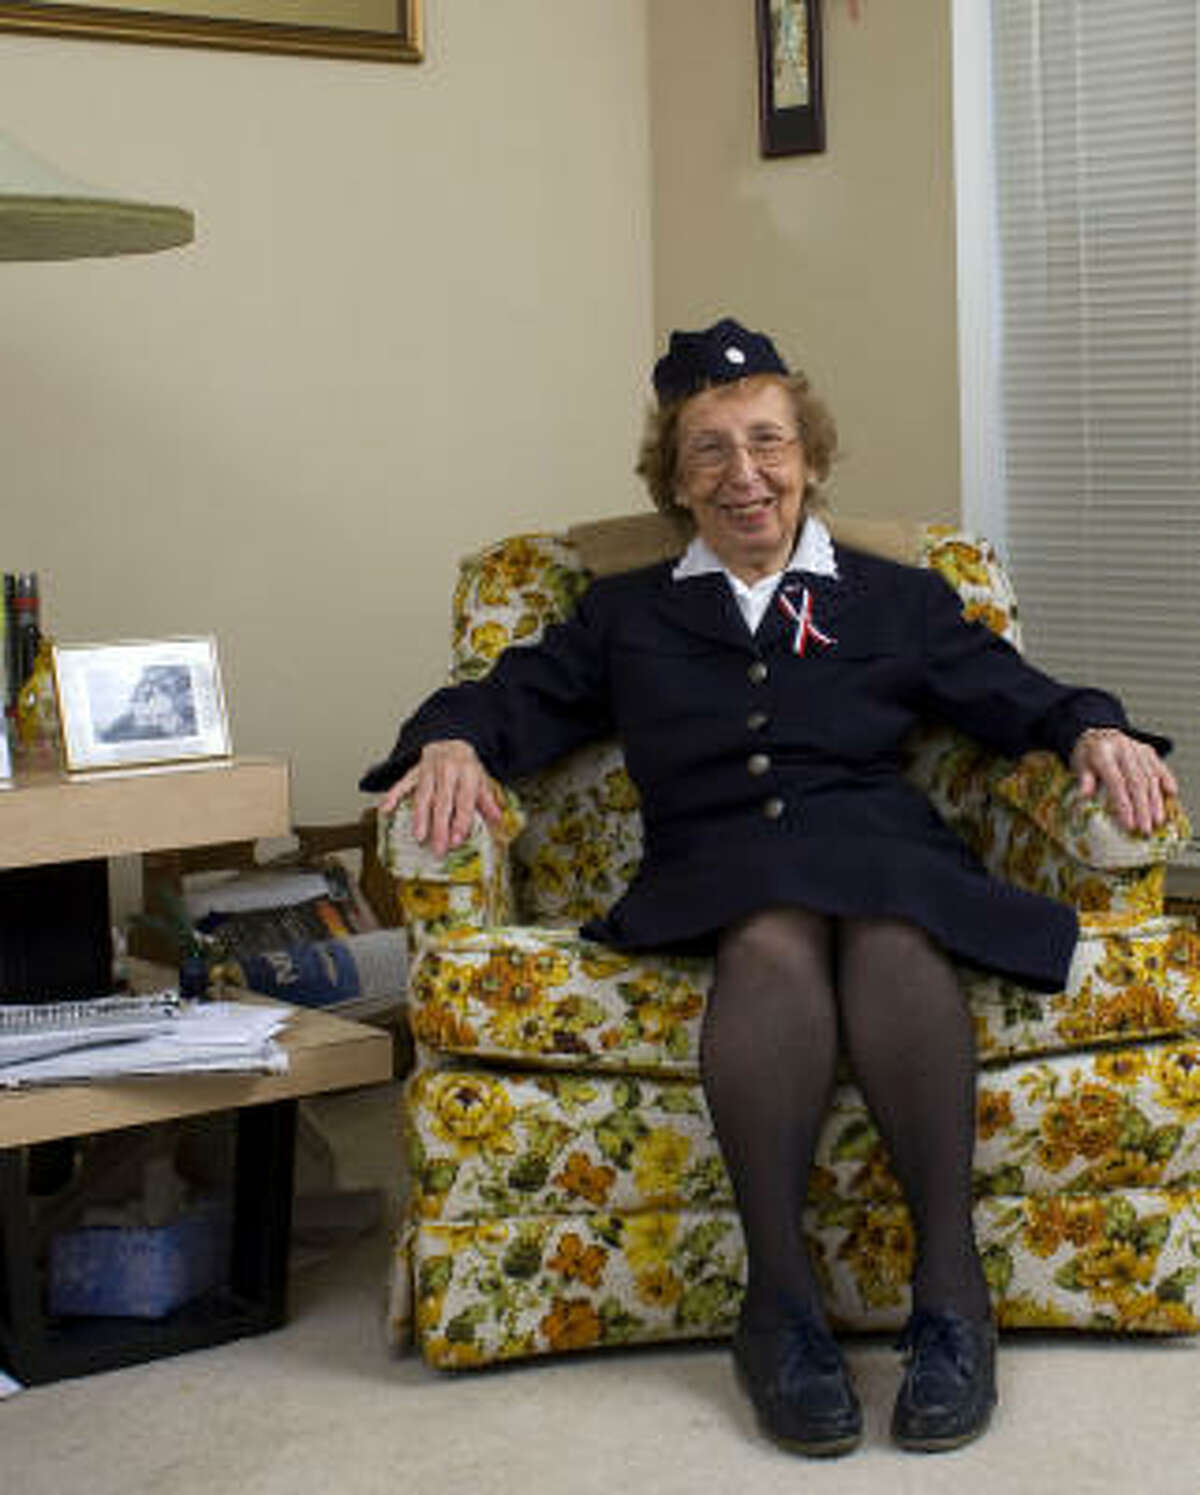 """U.S. Navy veteran Helene Lipman, whose husband escaped from Germany during the Holocaust, lives in Sugar Land. """"We did what we could,"""" she said of being one of the first military women."""